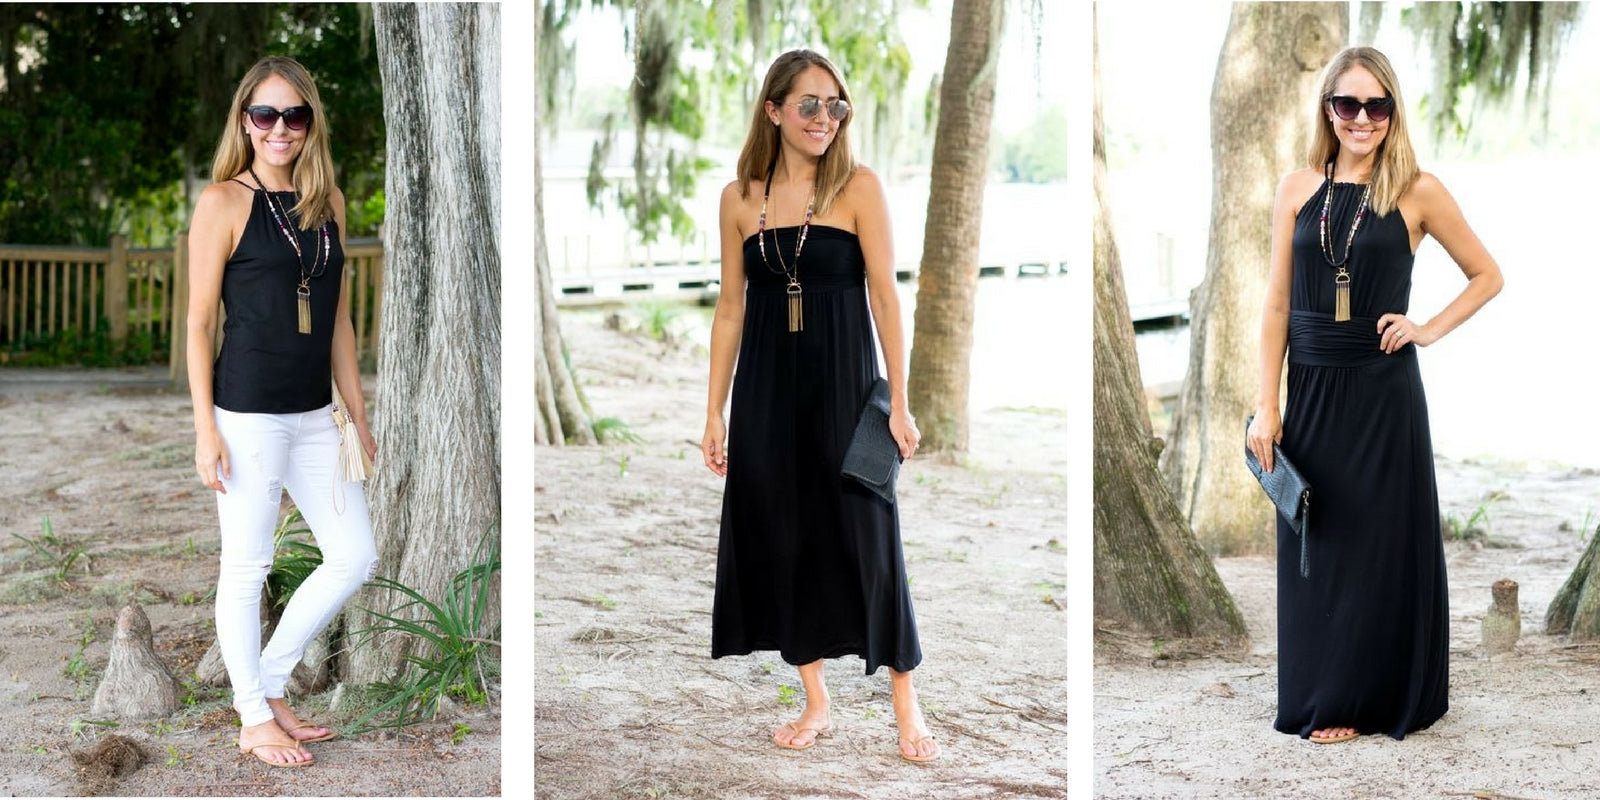 J's Everyday Fashion in Vacay's Perfect Black Top + Vacay LBD